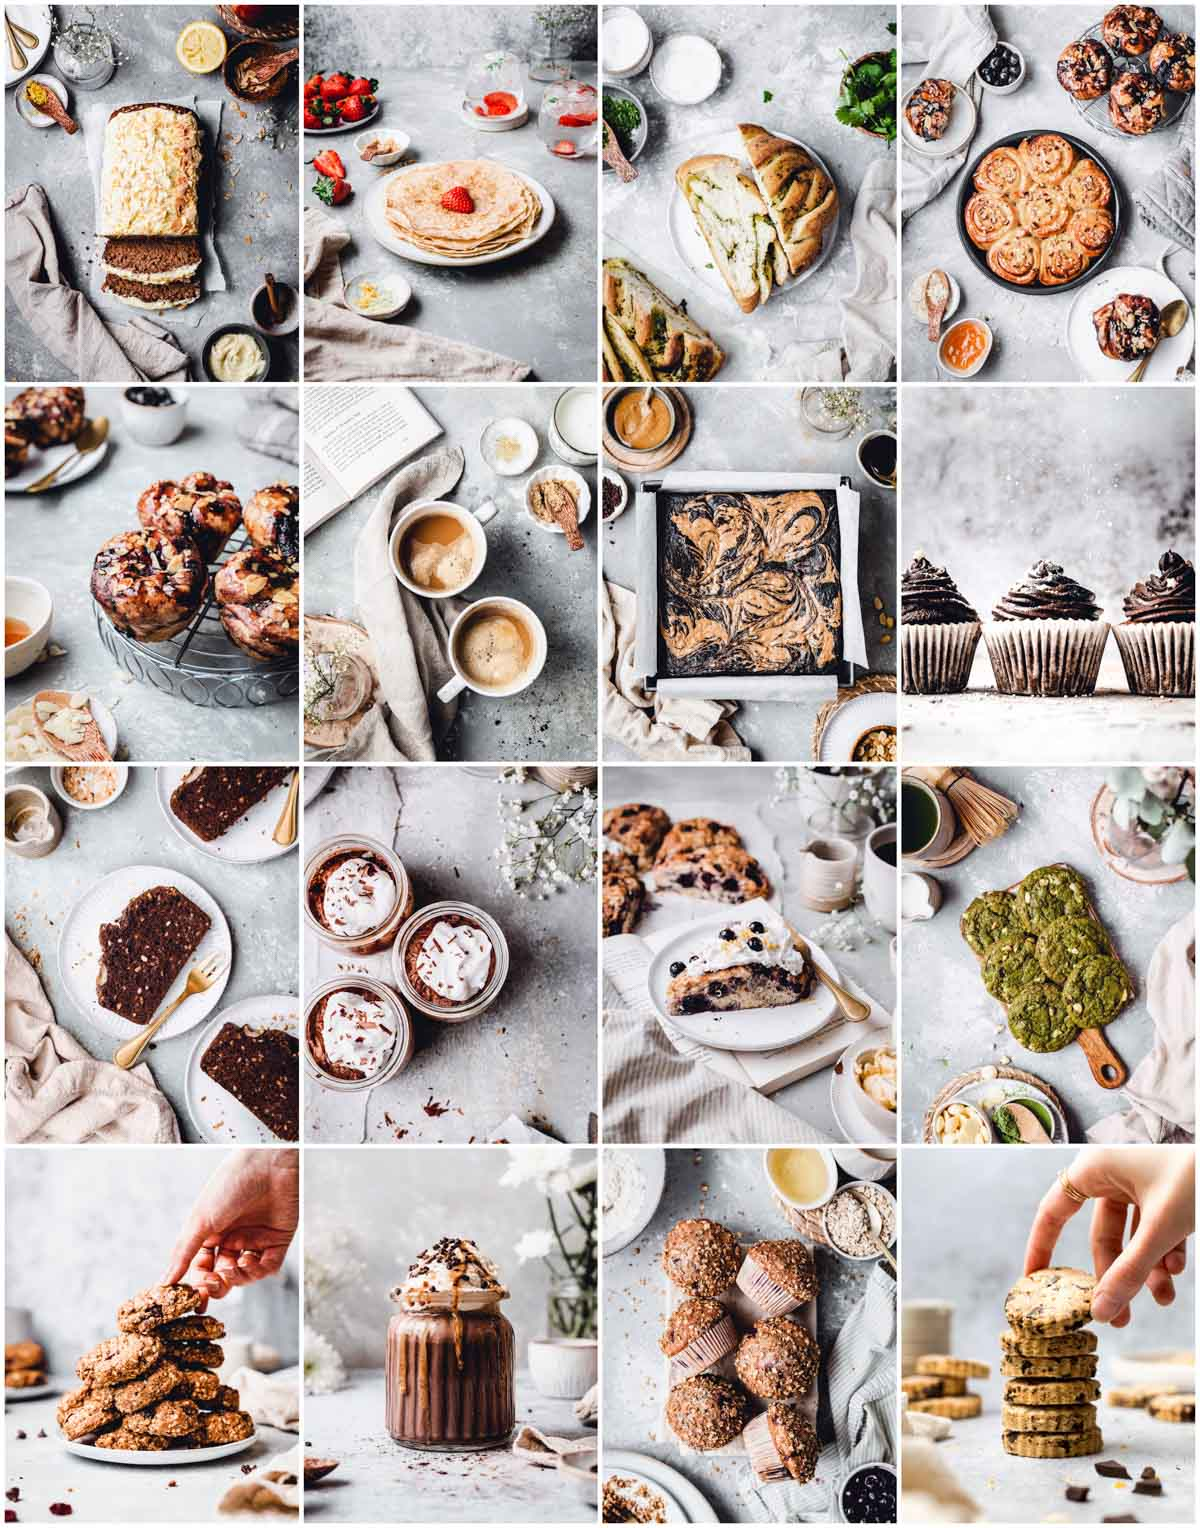 A collage of 16 different food photography images showing various desserts and drinks.